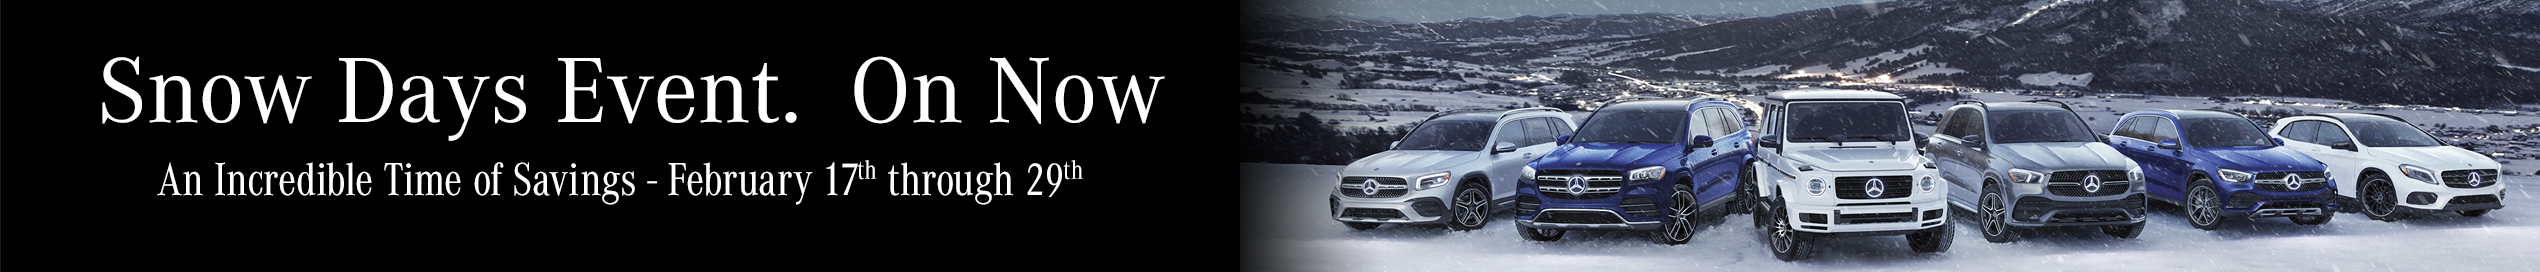 Top Page Banner Feb 24 2020 Mercedes Benz Downtown Calgary Snow Day